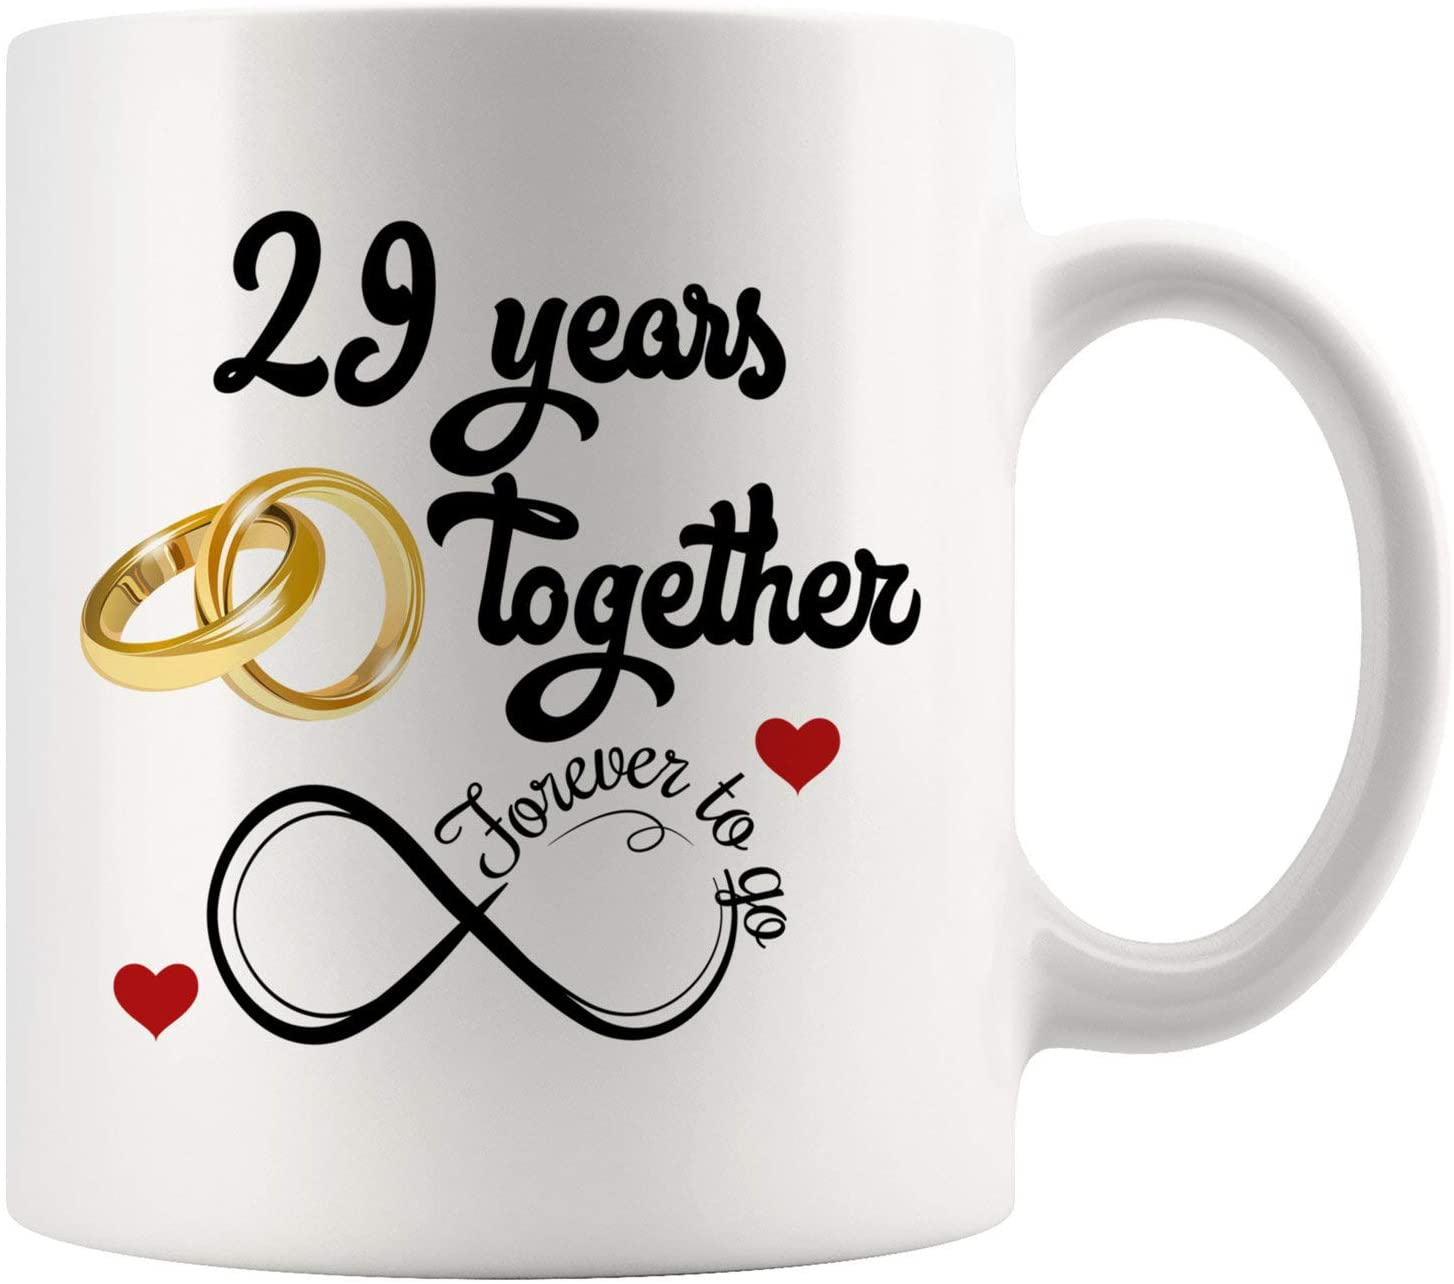 29th Wedding Anniversary For Him And Her, 29th Anniversarys For Her Him, 29th Anniversary Mug For Husband & Wife, 29 Years Together, Married 29 Years, 29 Years Couple (11 oz)